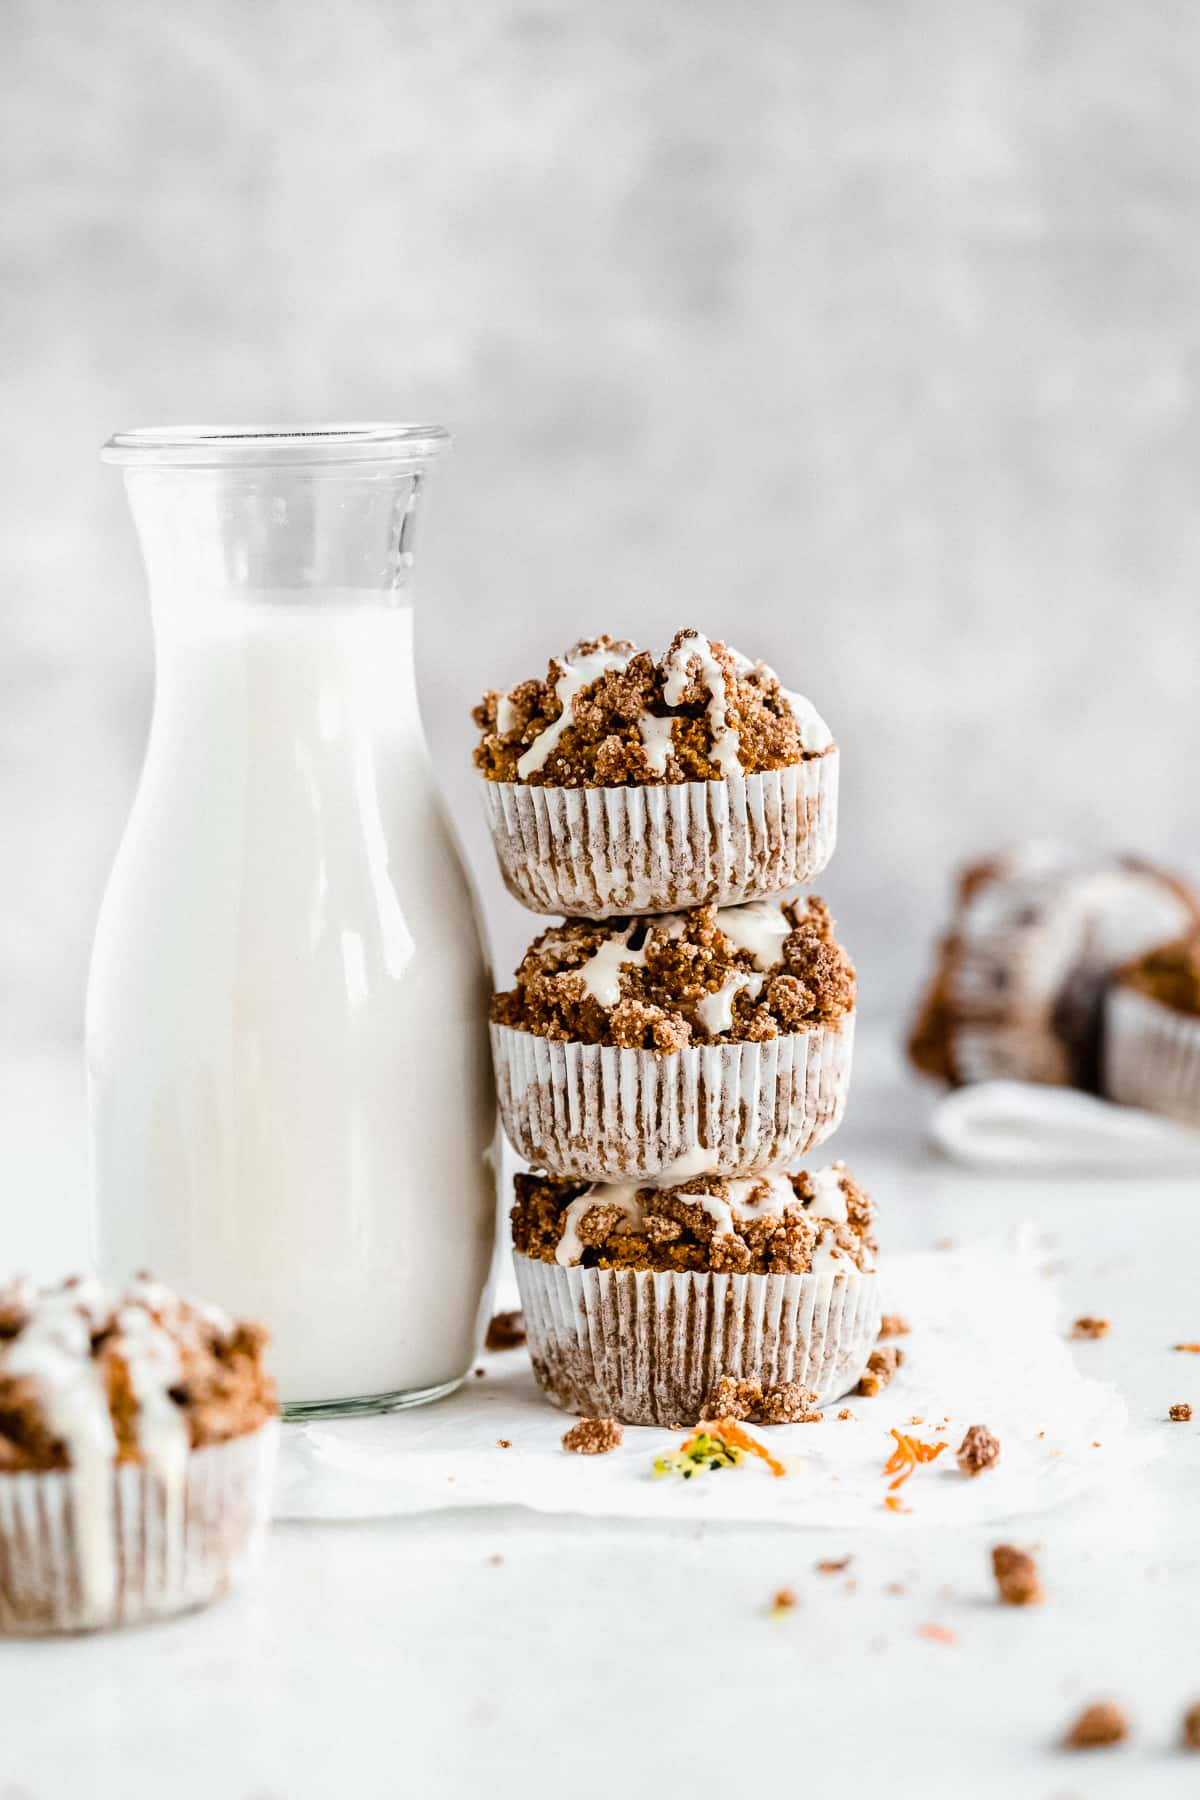 Three Gluten-free Zucchini Muffins with Sweet Maple Cream Cheese Glaze stacked on top of one another next to a carafe of milk.  Additional muffins can be seen in the background.